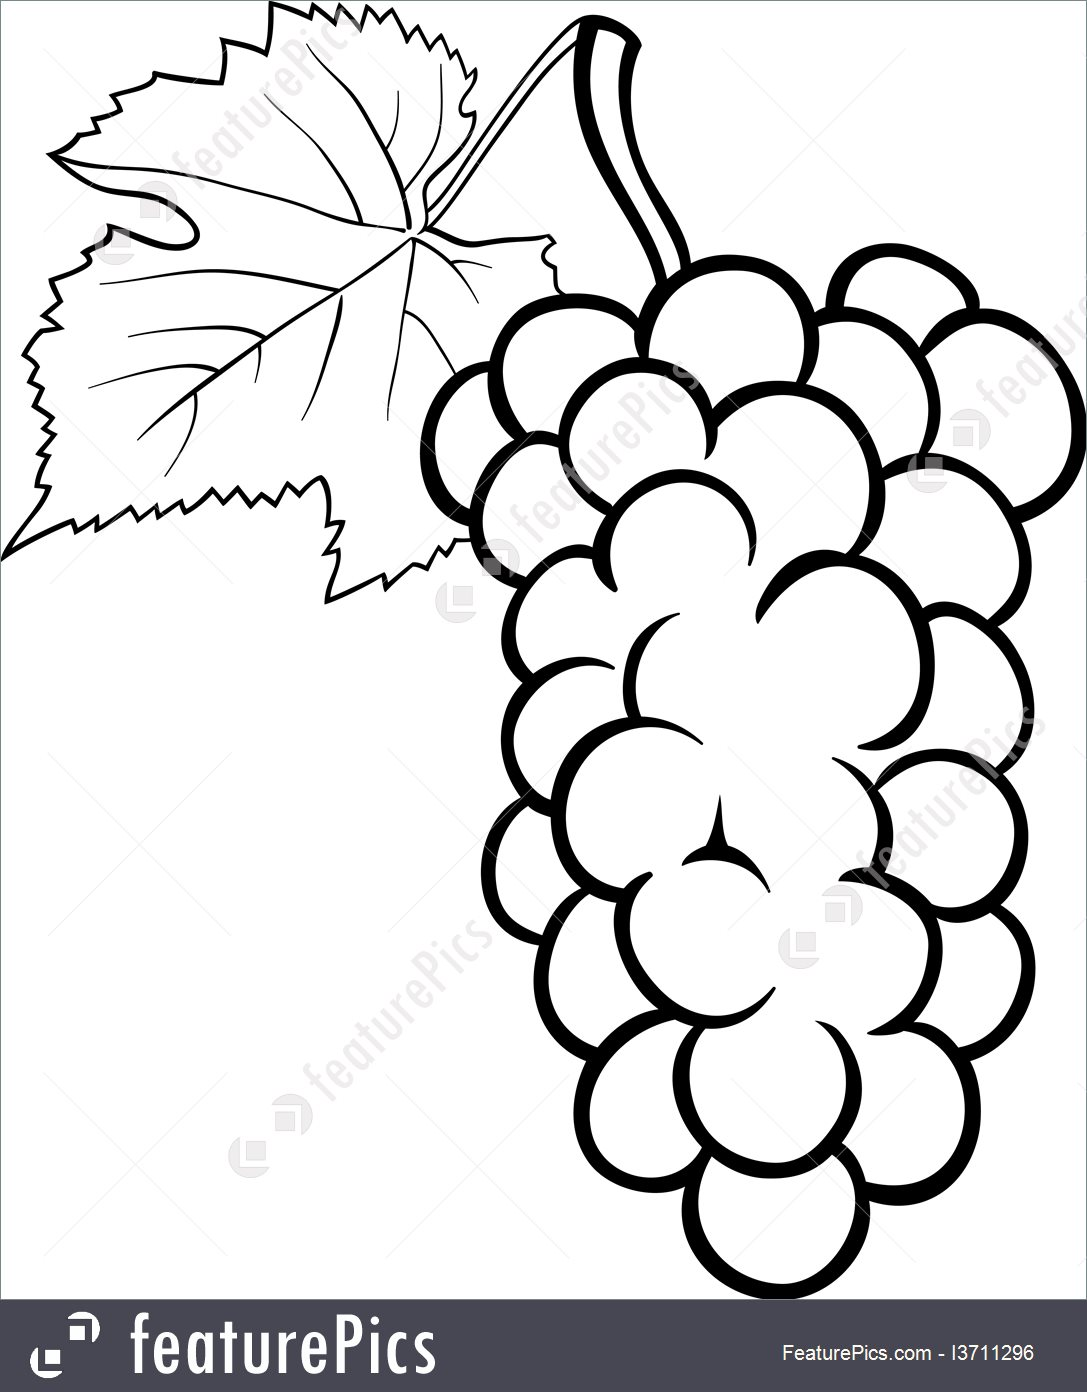 Grape Vine Coloring Page At Getdrawings Com Free For Personal Use